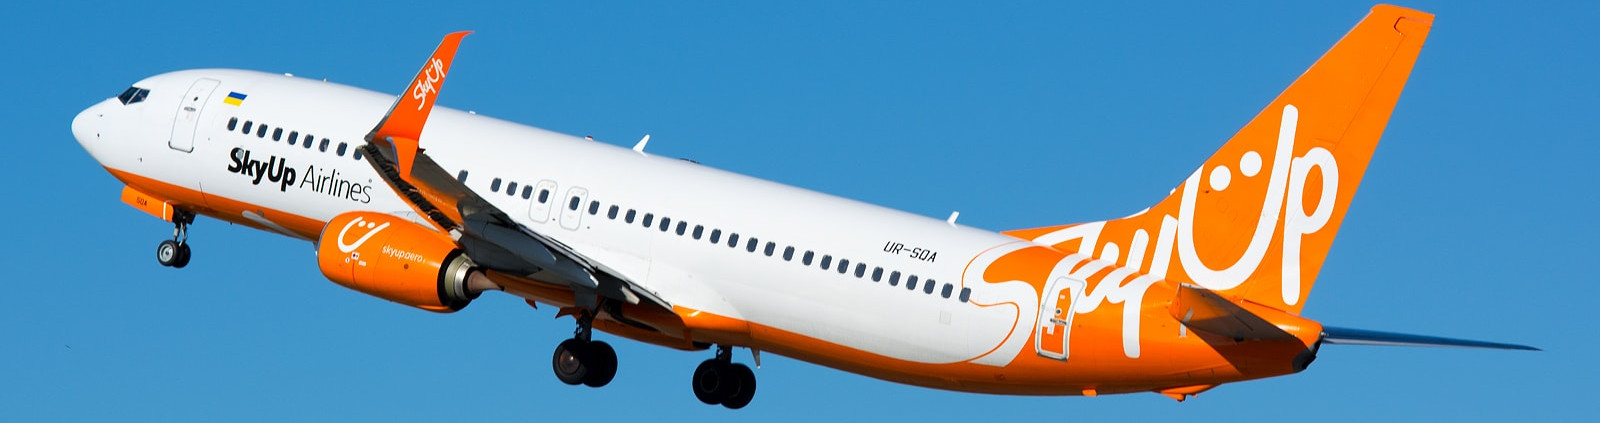 UPDATED. SkyUp Airlines launches special commercial flights to allow Ukrainians from different countries to return home